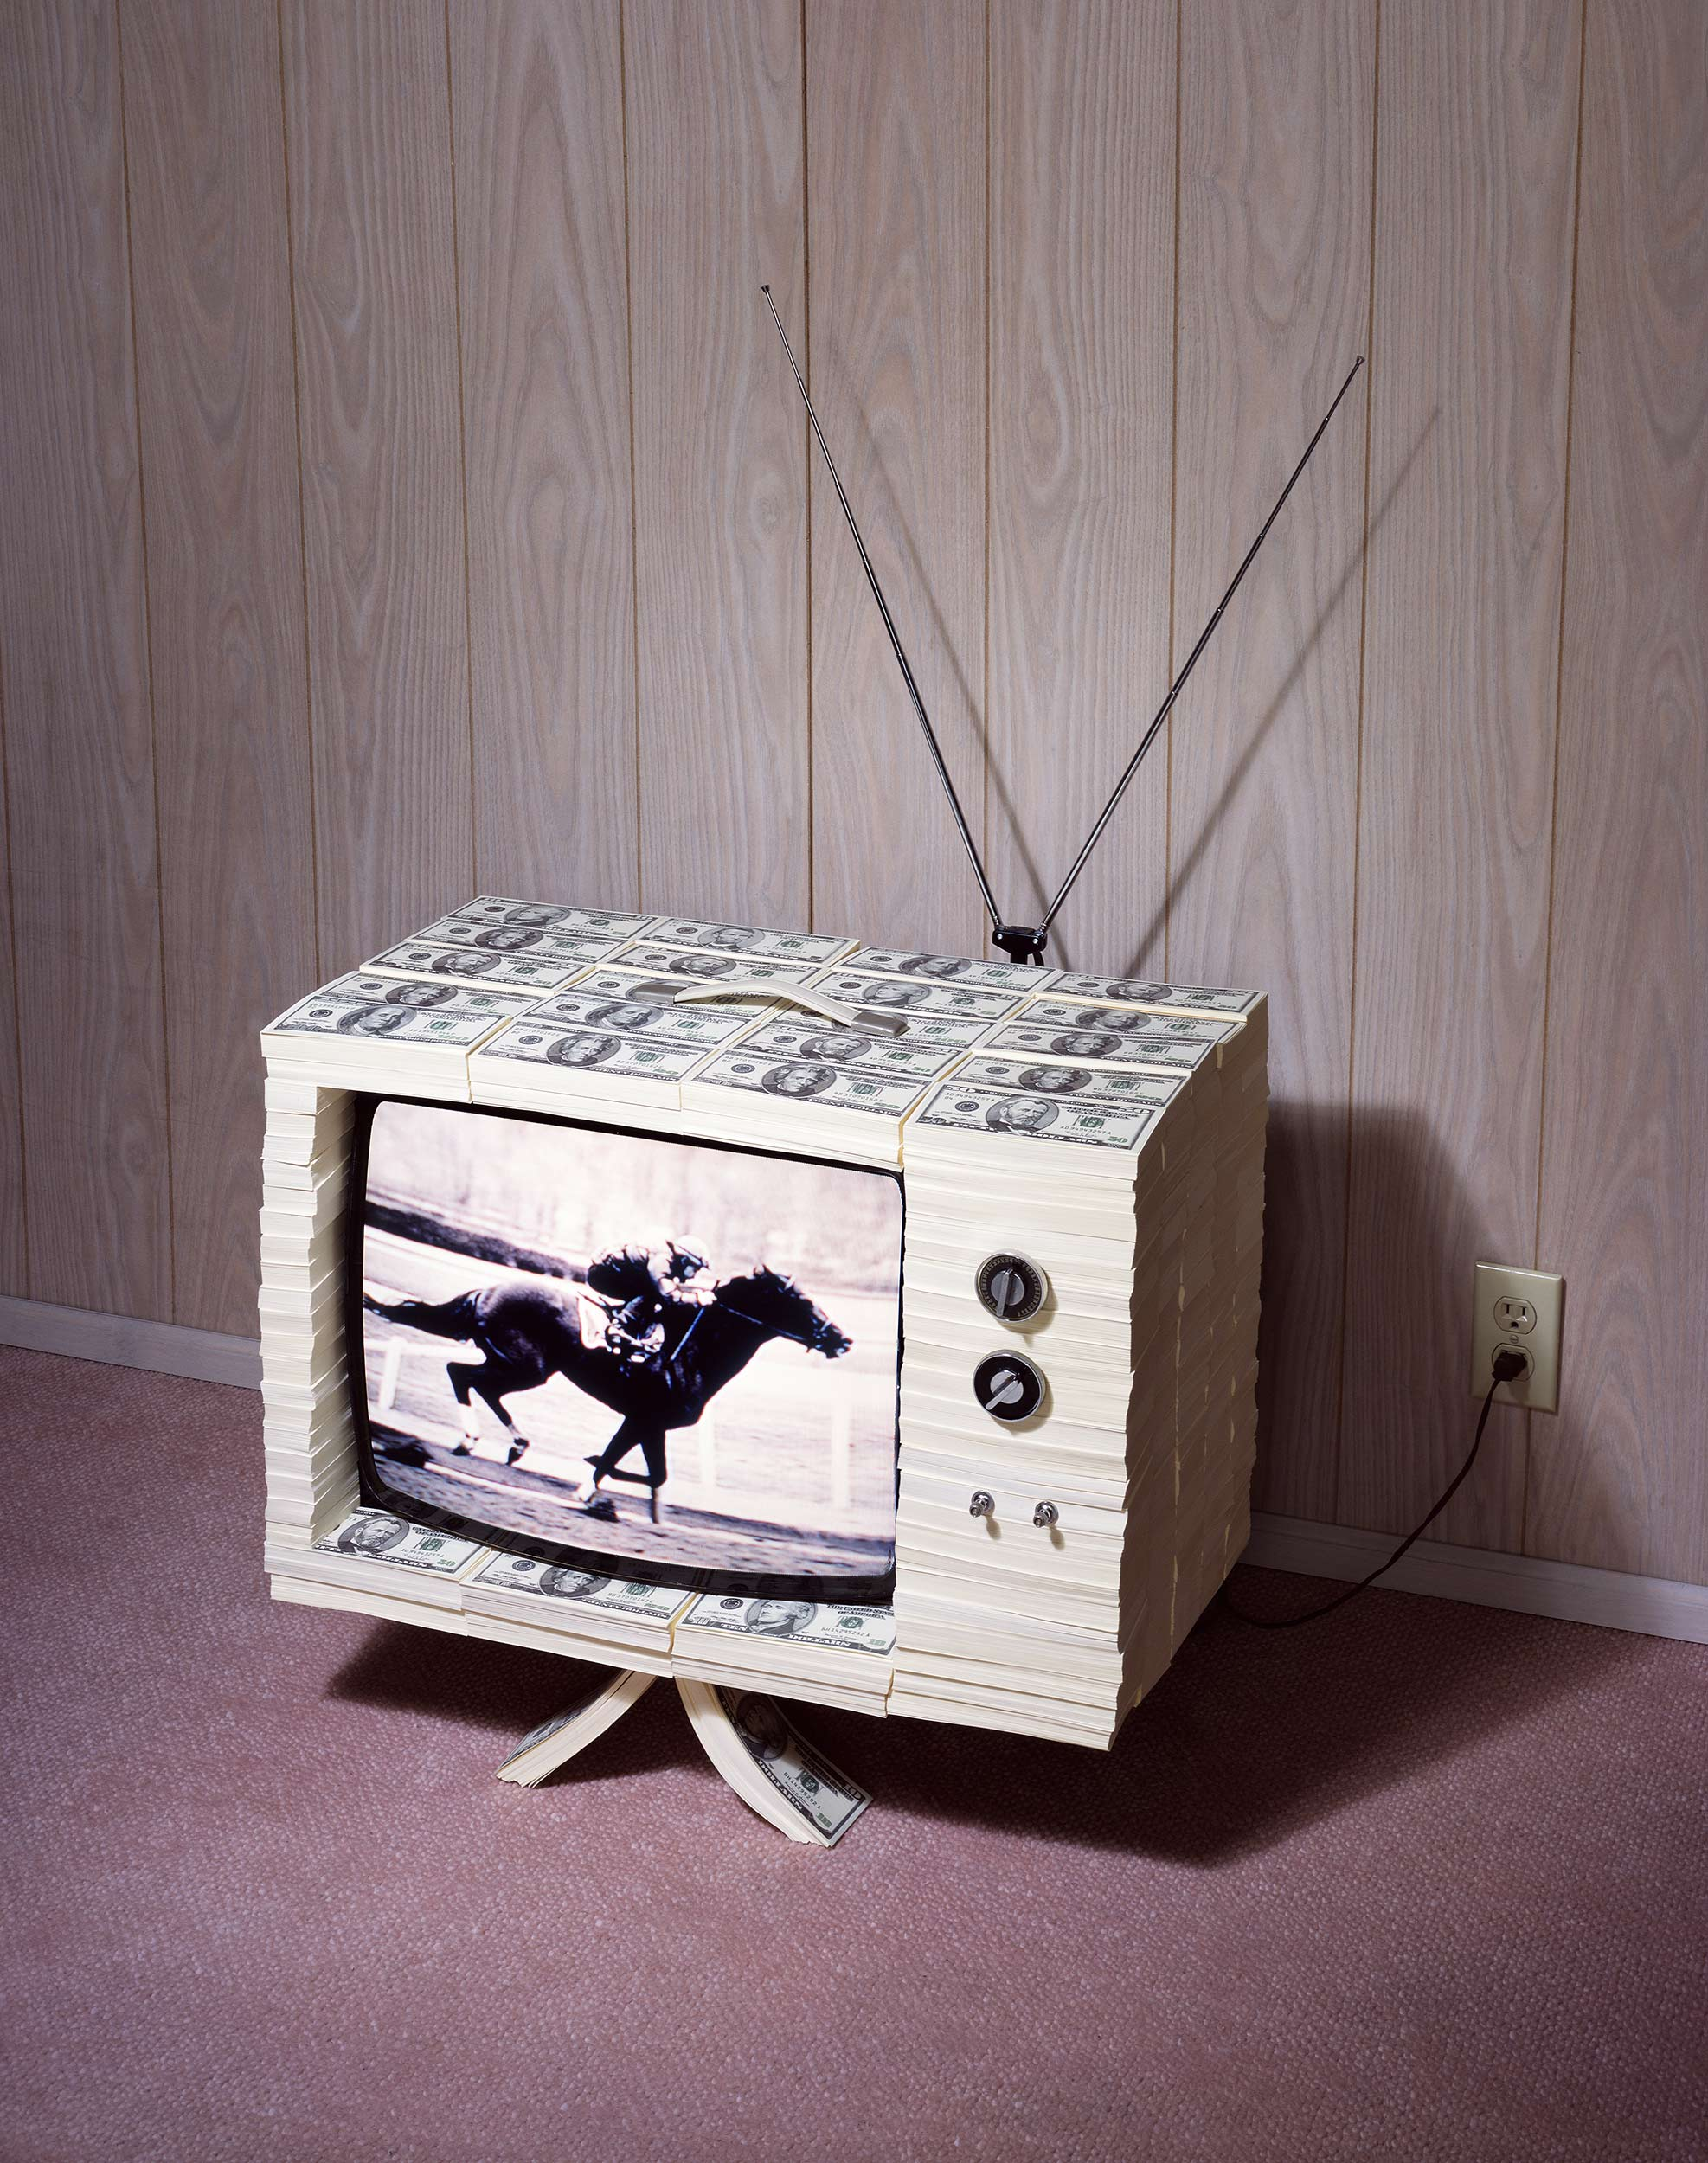 2001,-Expensive-Television